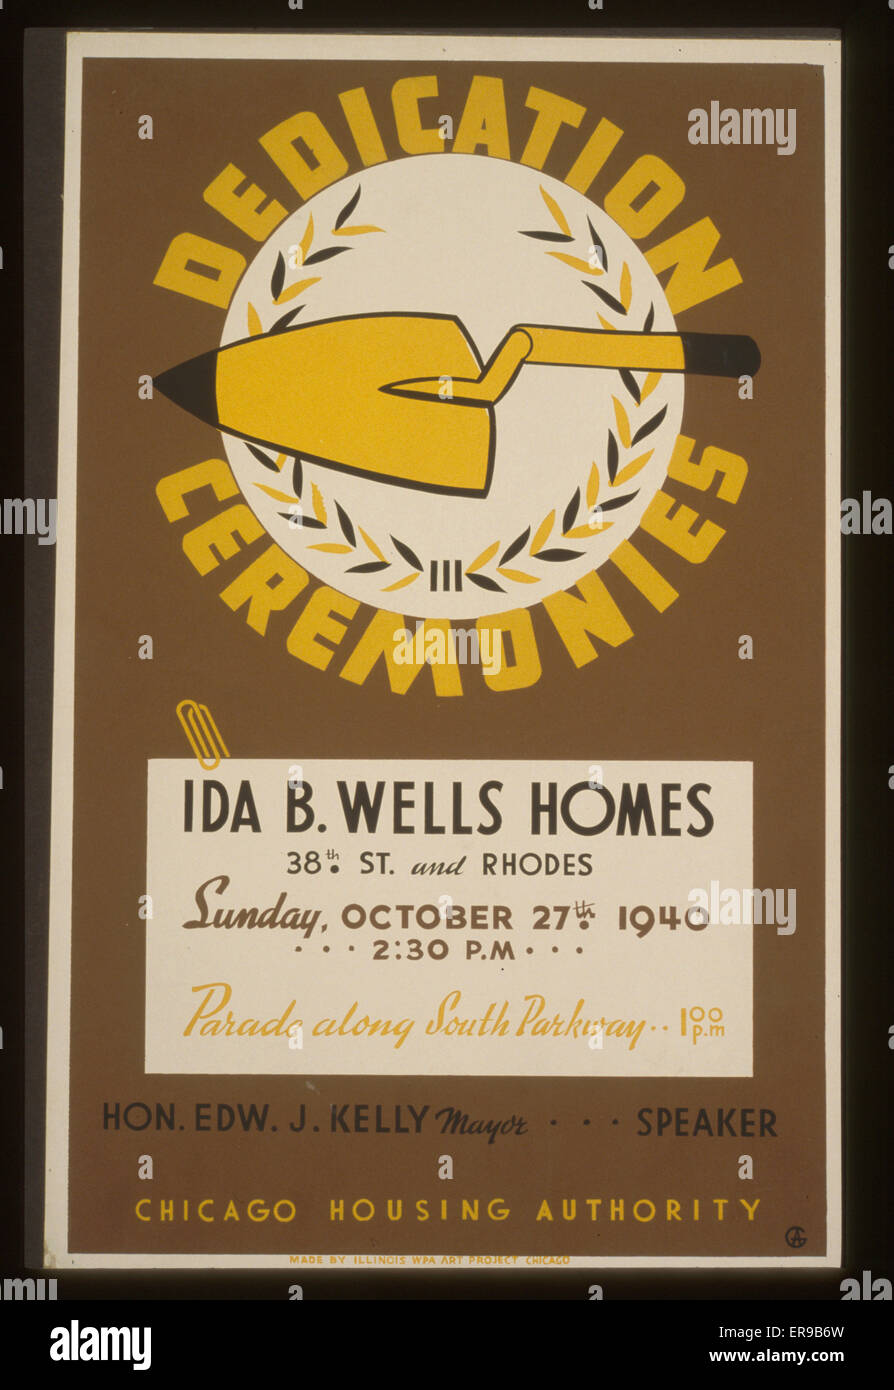 Dedication ceremonies - Ida B. Wells Homes  parade along South Parkway  Chicago Housing Authority. Poster showing - Stock Image